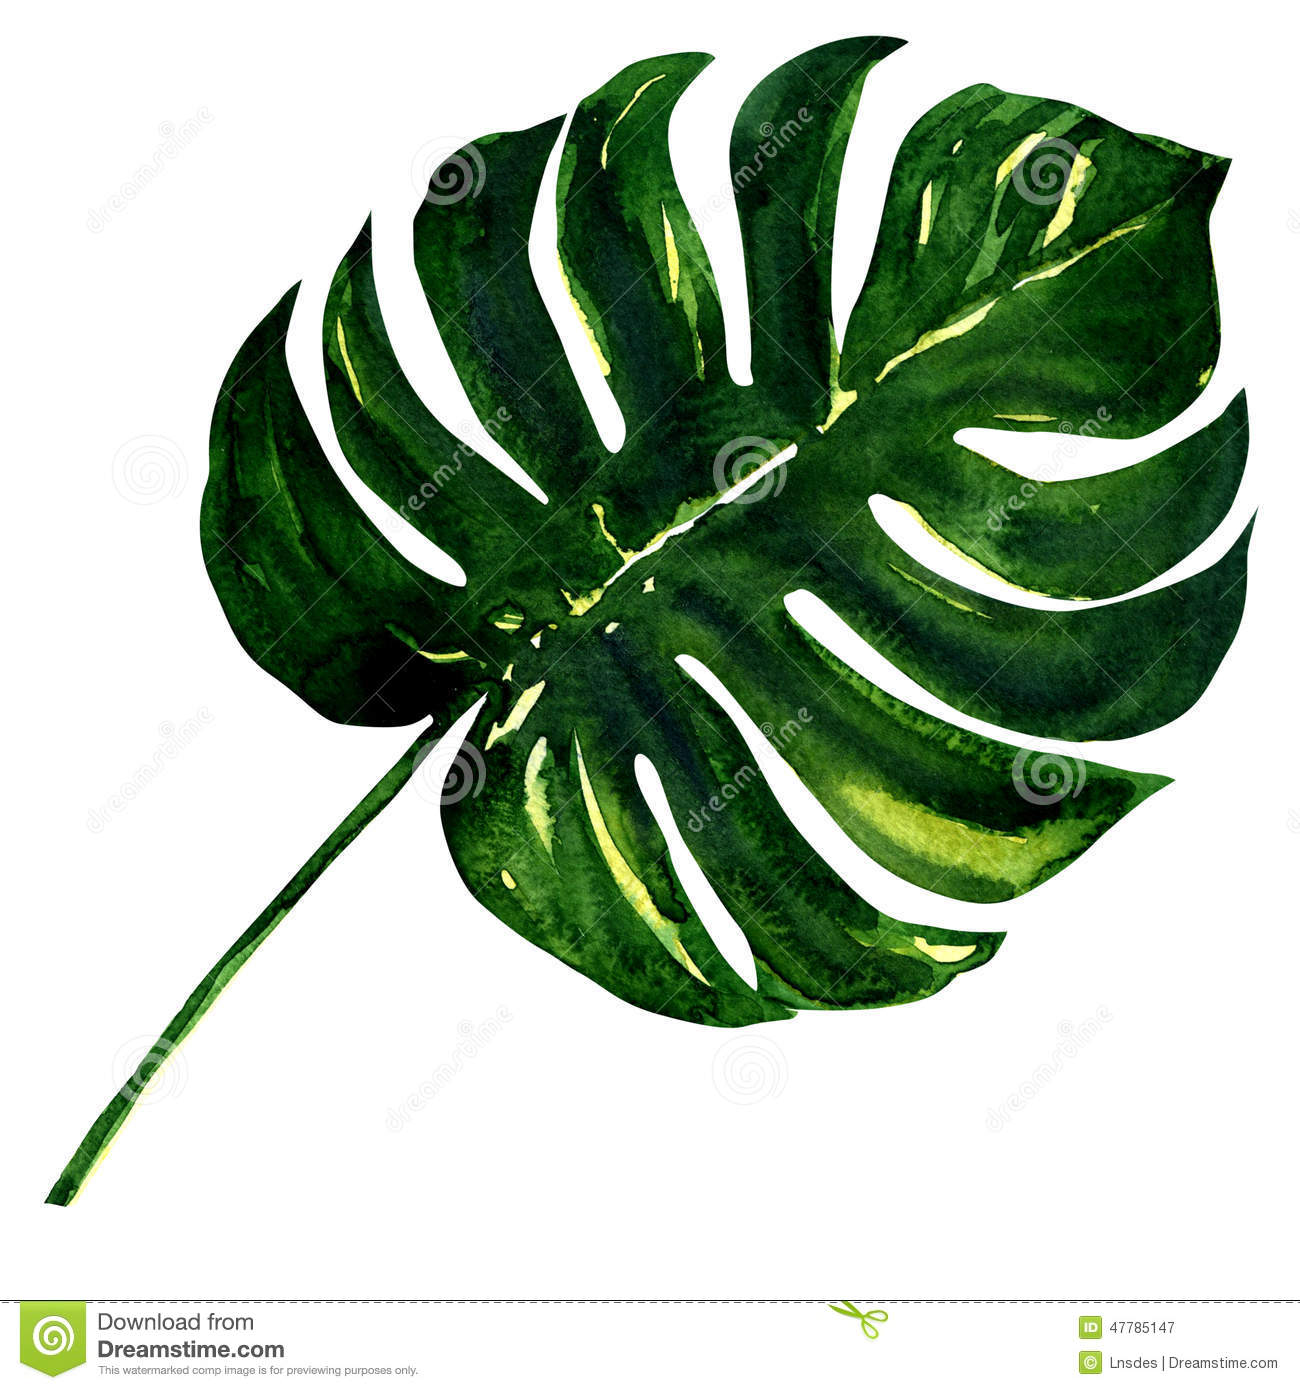 Grande feuille verte d 39 usine de monstera d 39 isolement for Plante grande feuille verte